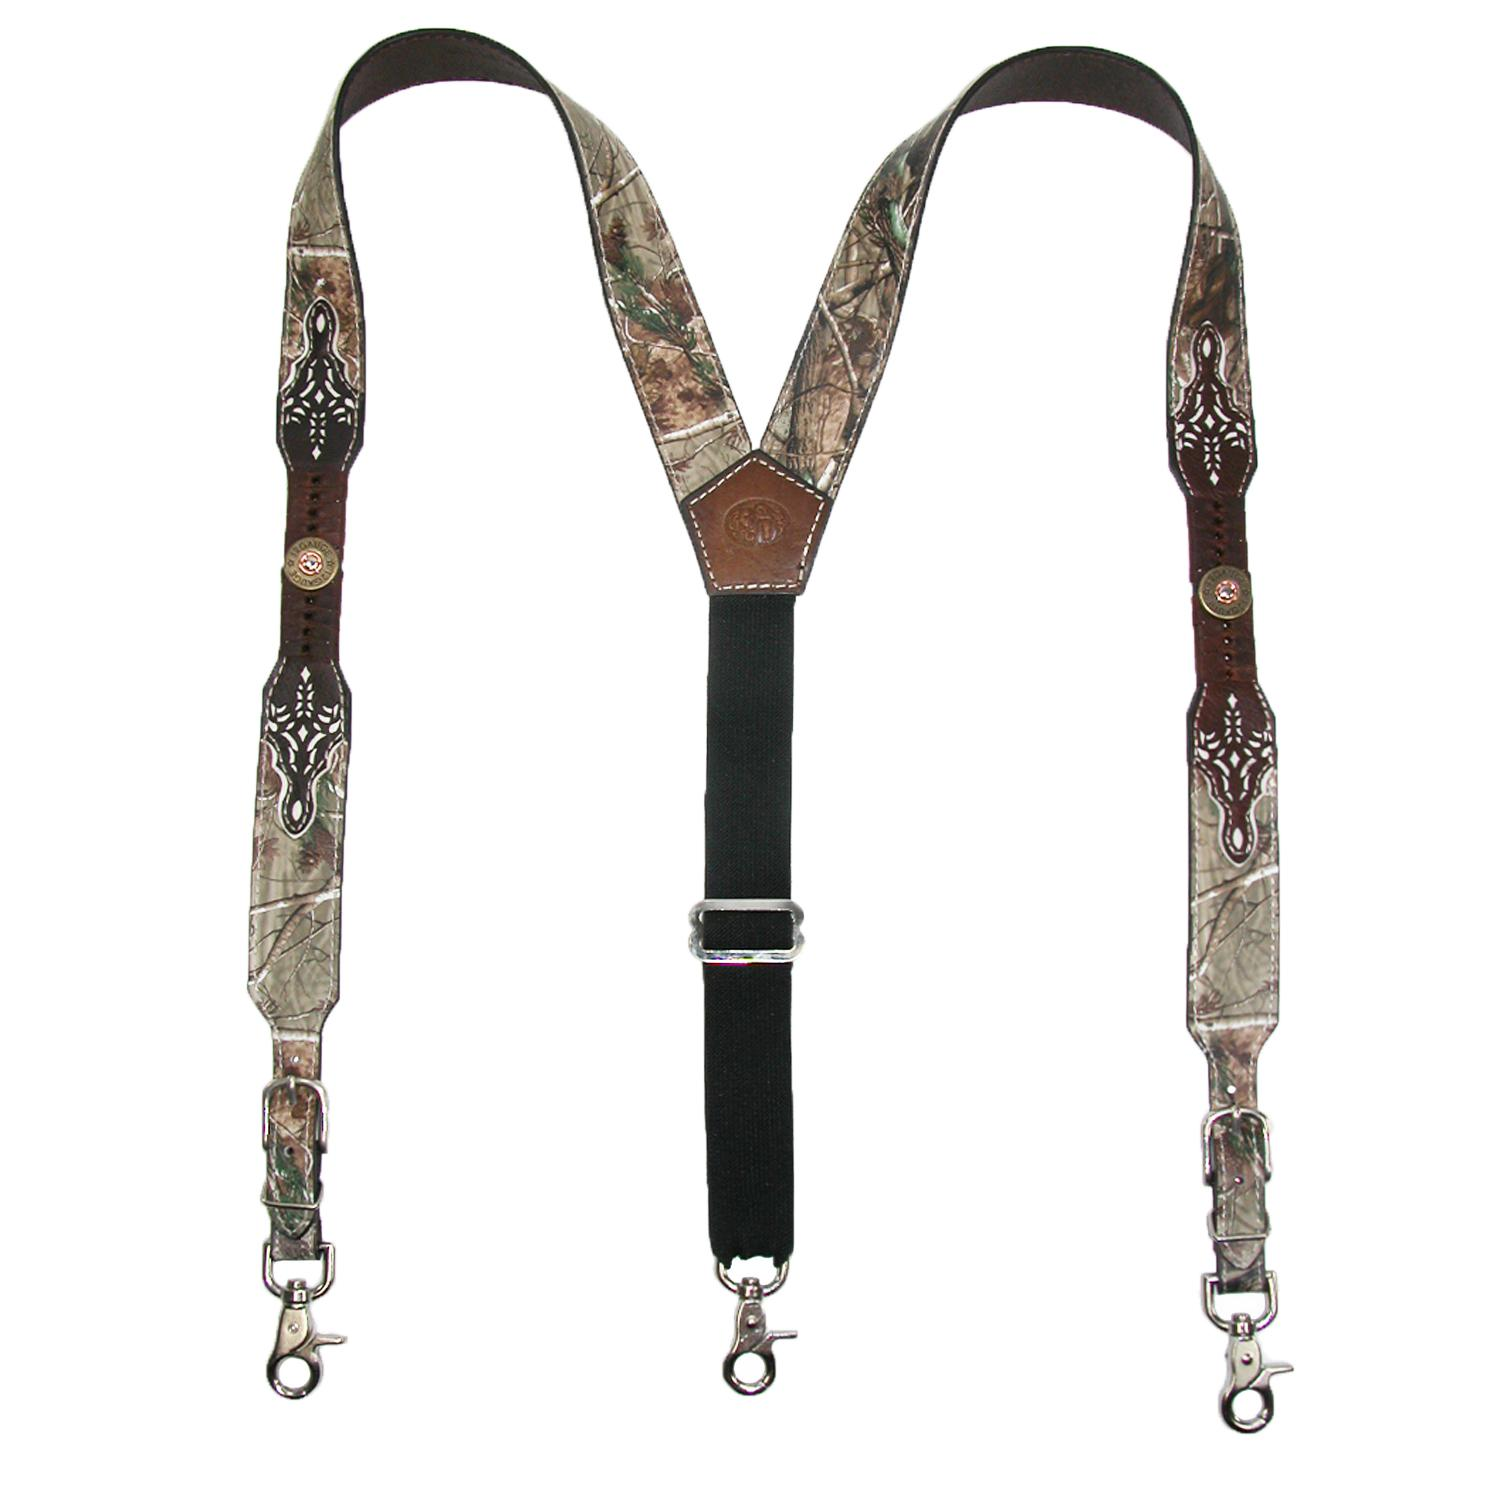 3 D Belt Company Mens Leather Camouflage Lobster Claw Clip End Suspenders